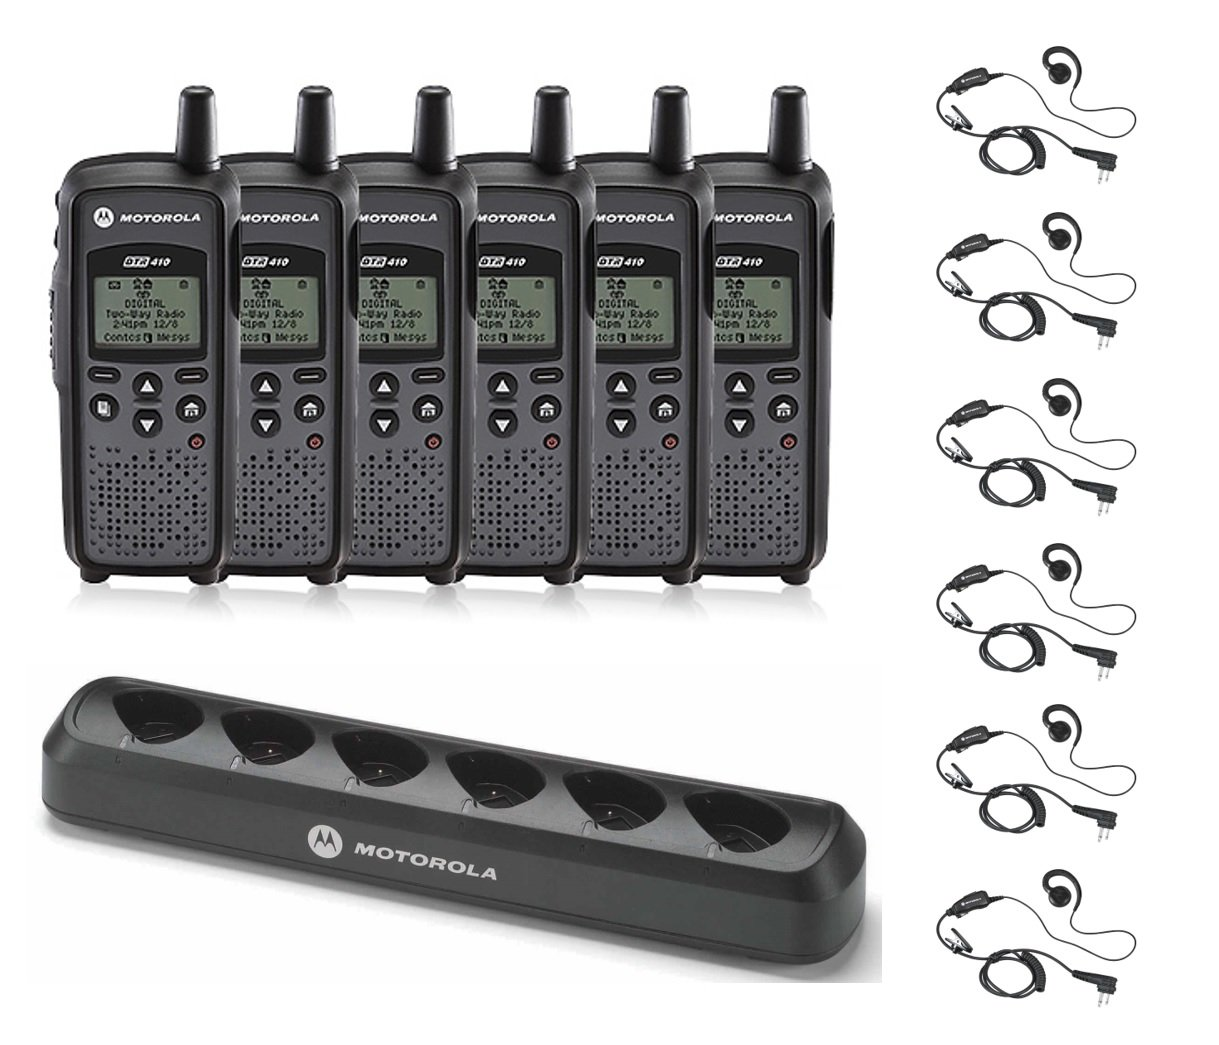 6 Pack of Motorola DTR410 Radios with 6 Push To Talk (PTT) earpieces and a 6-Bank Radio Charger